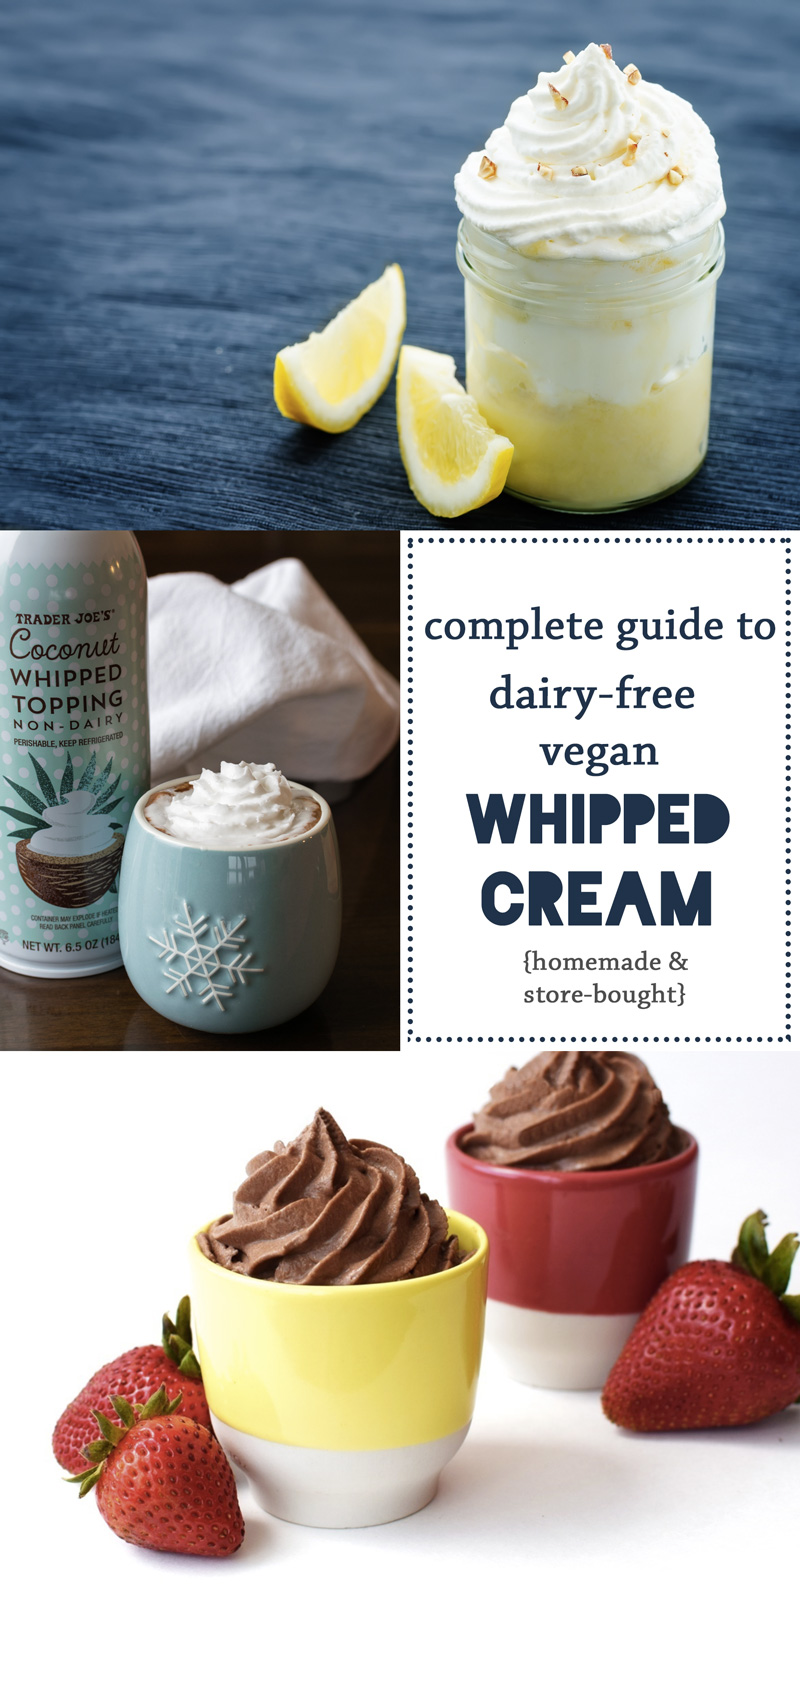 Dairy-Free & Vegan Whipped Cream: The Guide to Products & Recipes